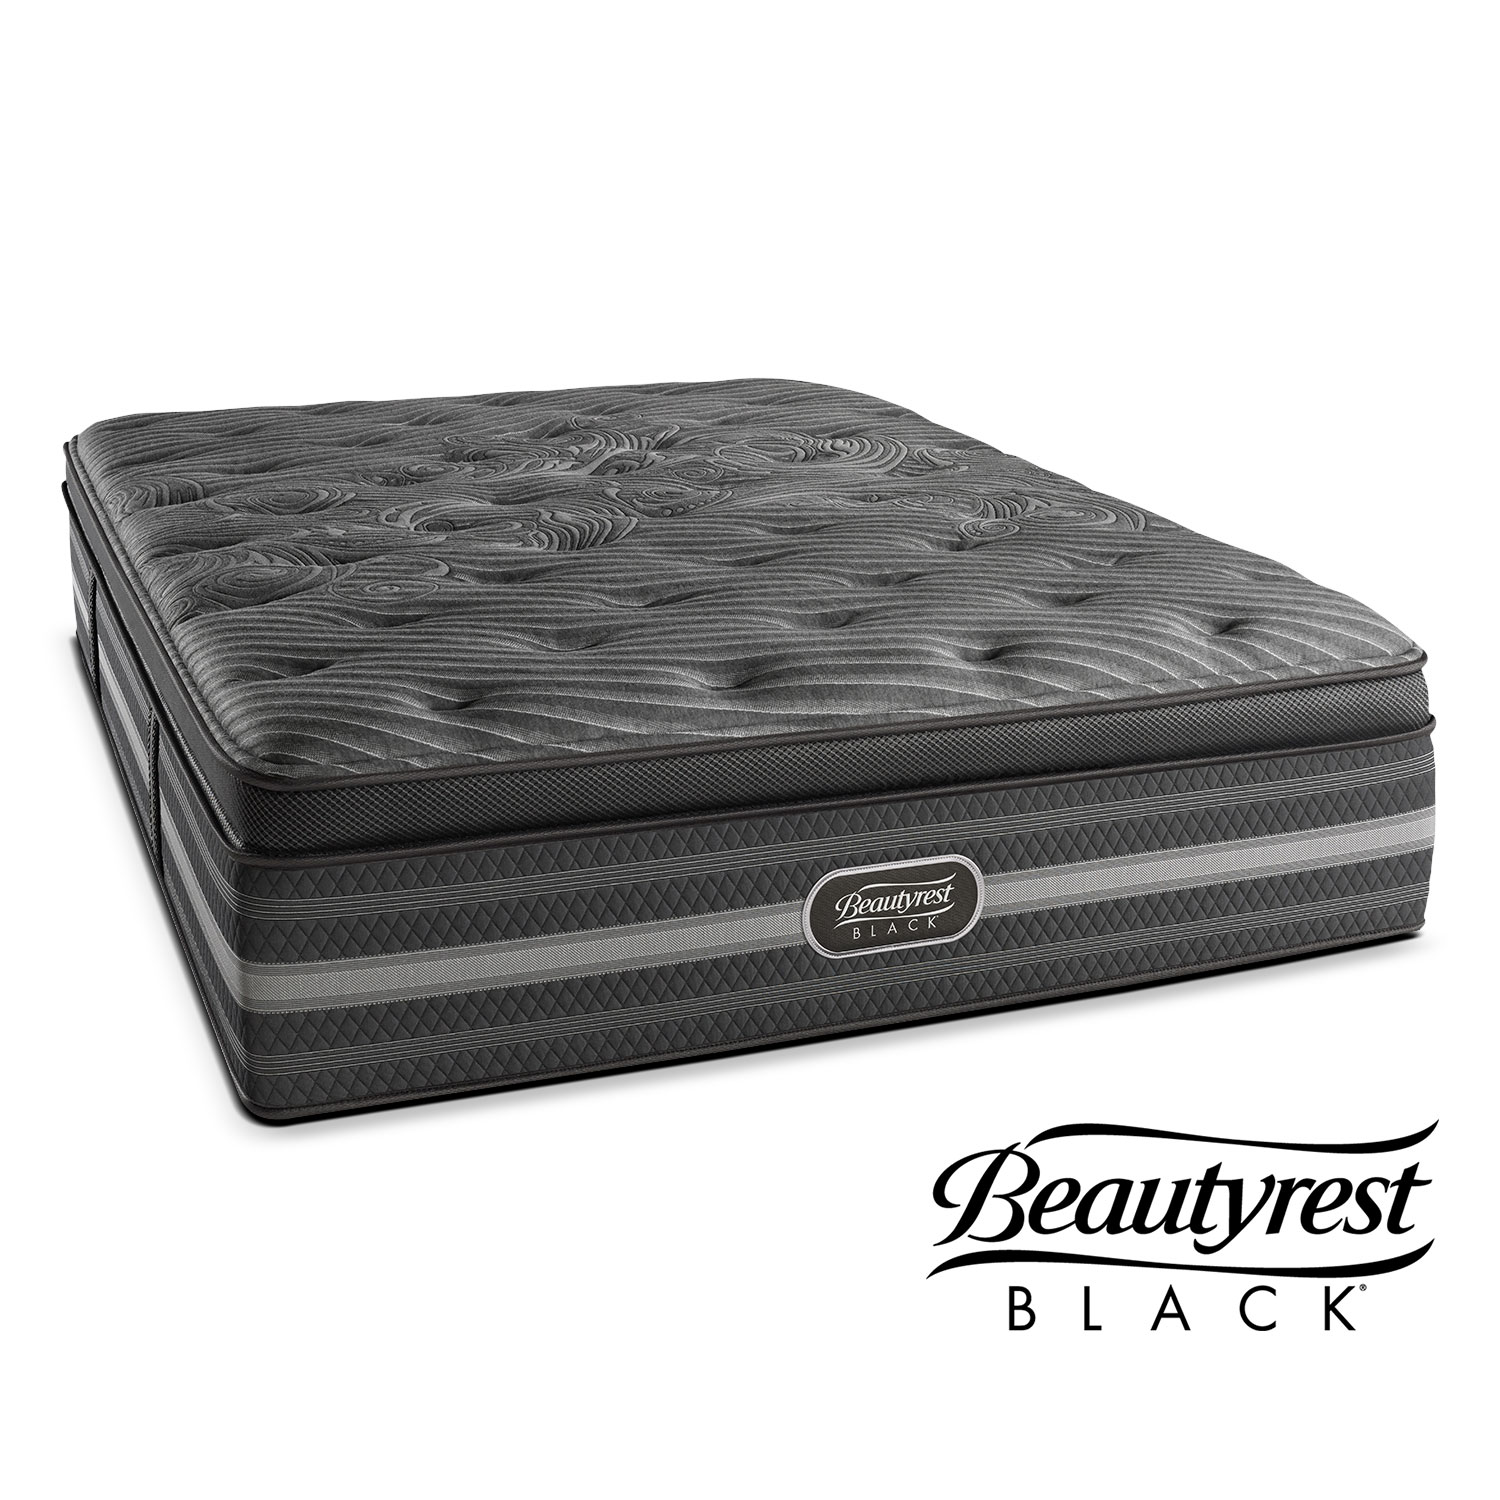 Beautyrest Black King Size Natasha Plush Mattress